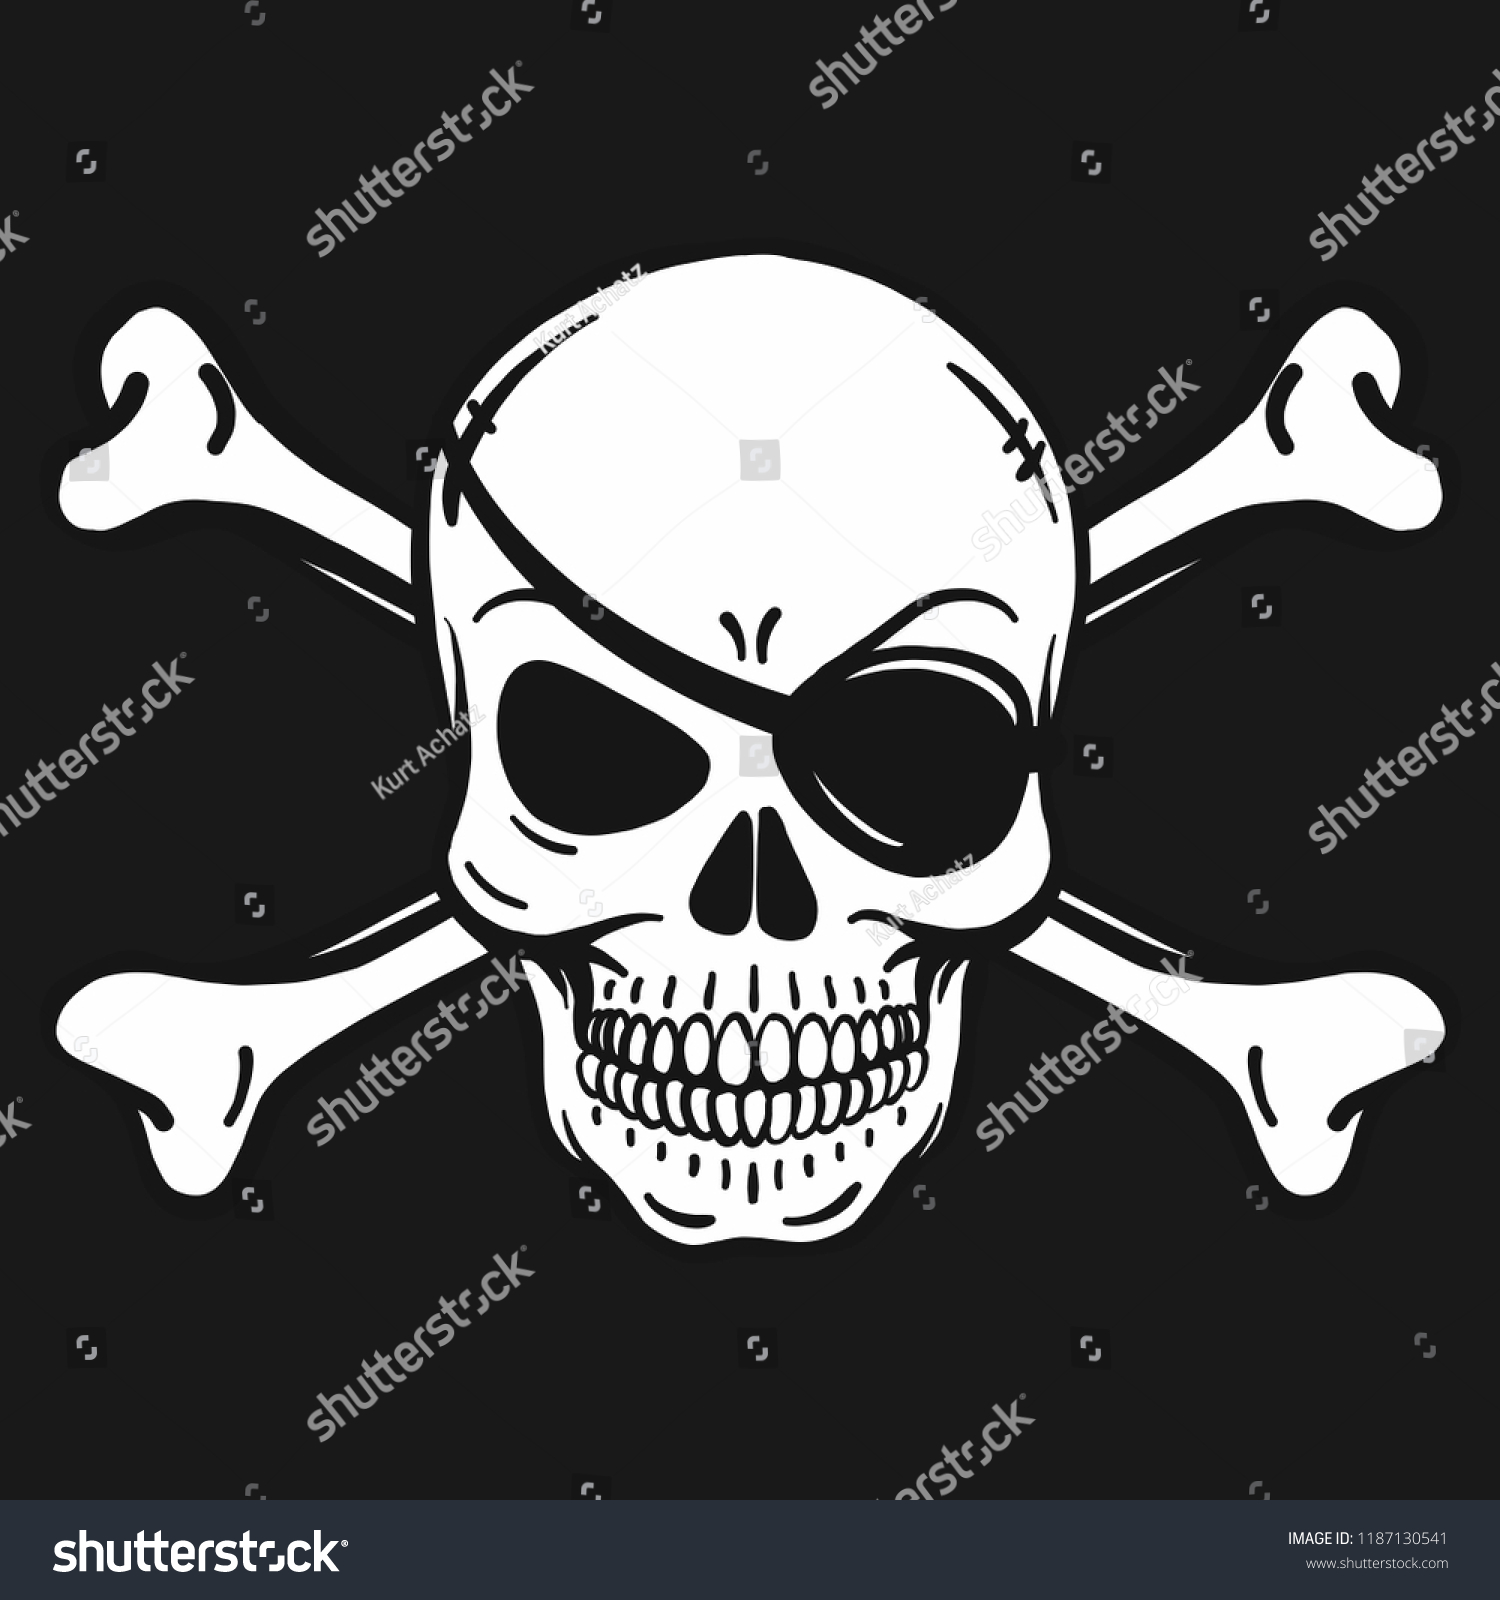 Bad Skull With Eye Patch And Crossbones Black White On Pirate Flag Vector